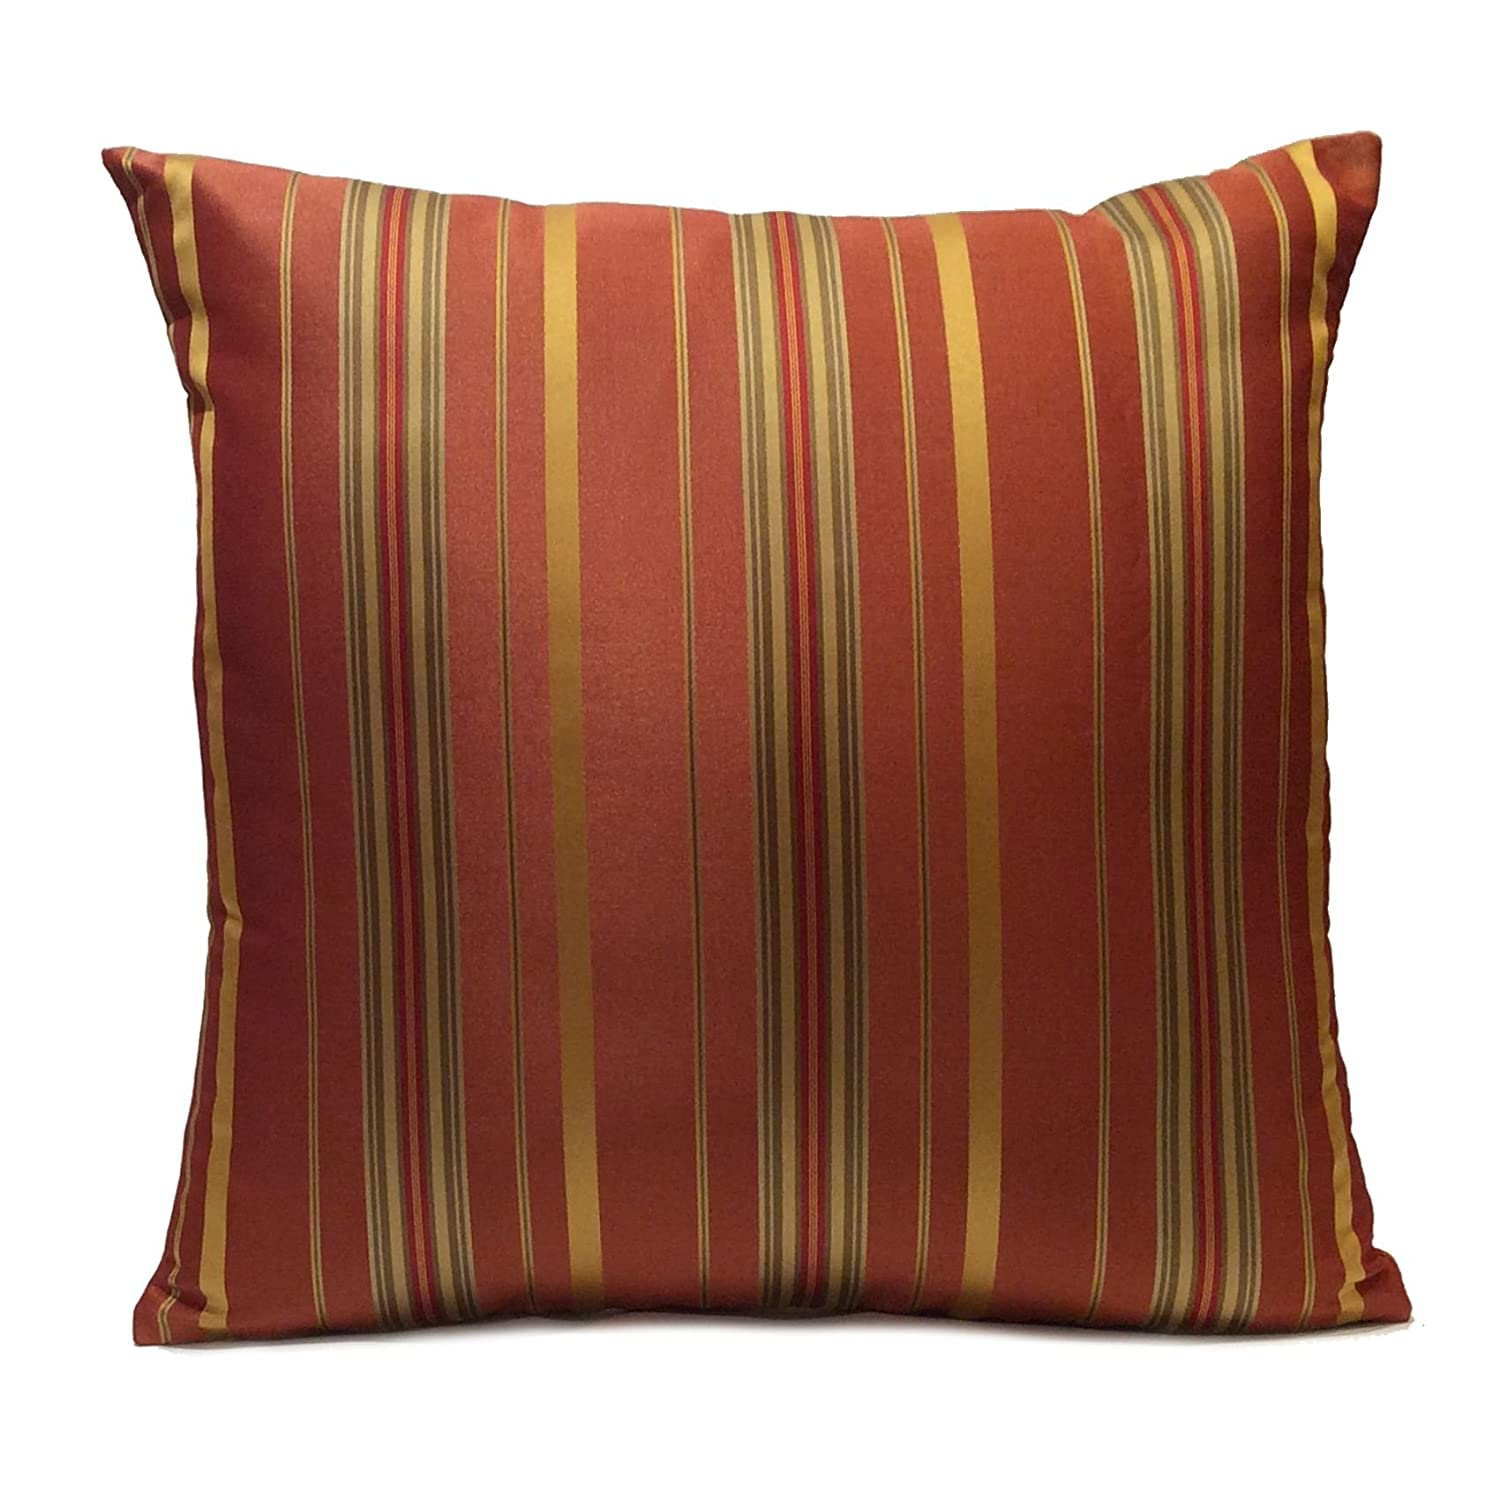 Copper Satin blend Decorative Throw Pillow Cover with Gold & red Stripes,Modern pillow,Accent Pillow,Toss Pillow,Pillow Sham,Cushion Pillow. (18